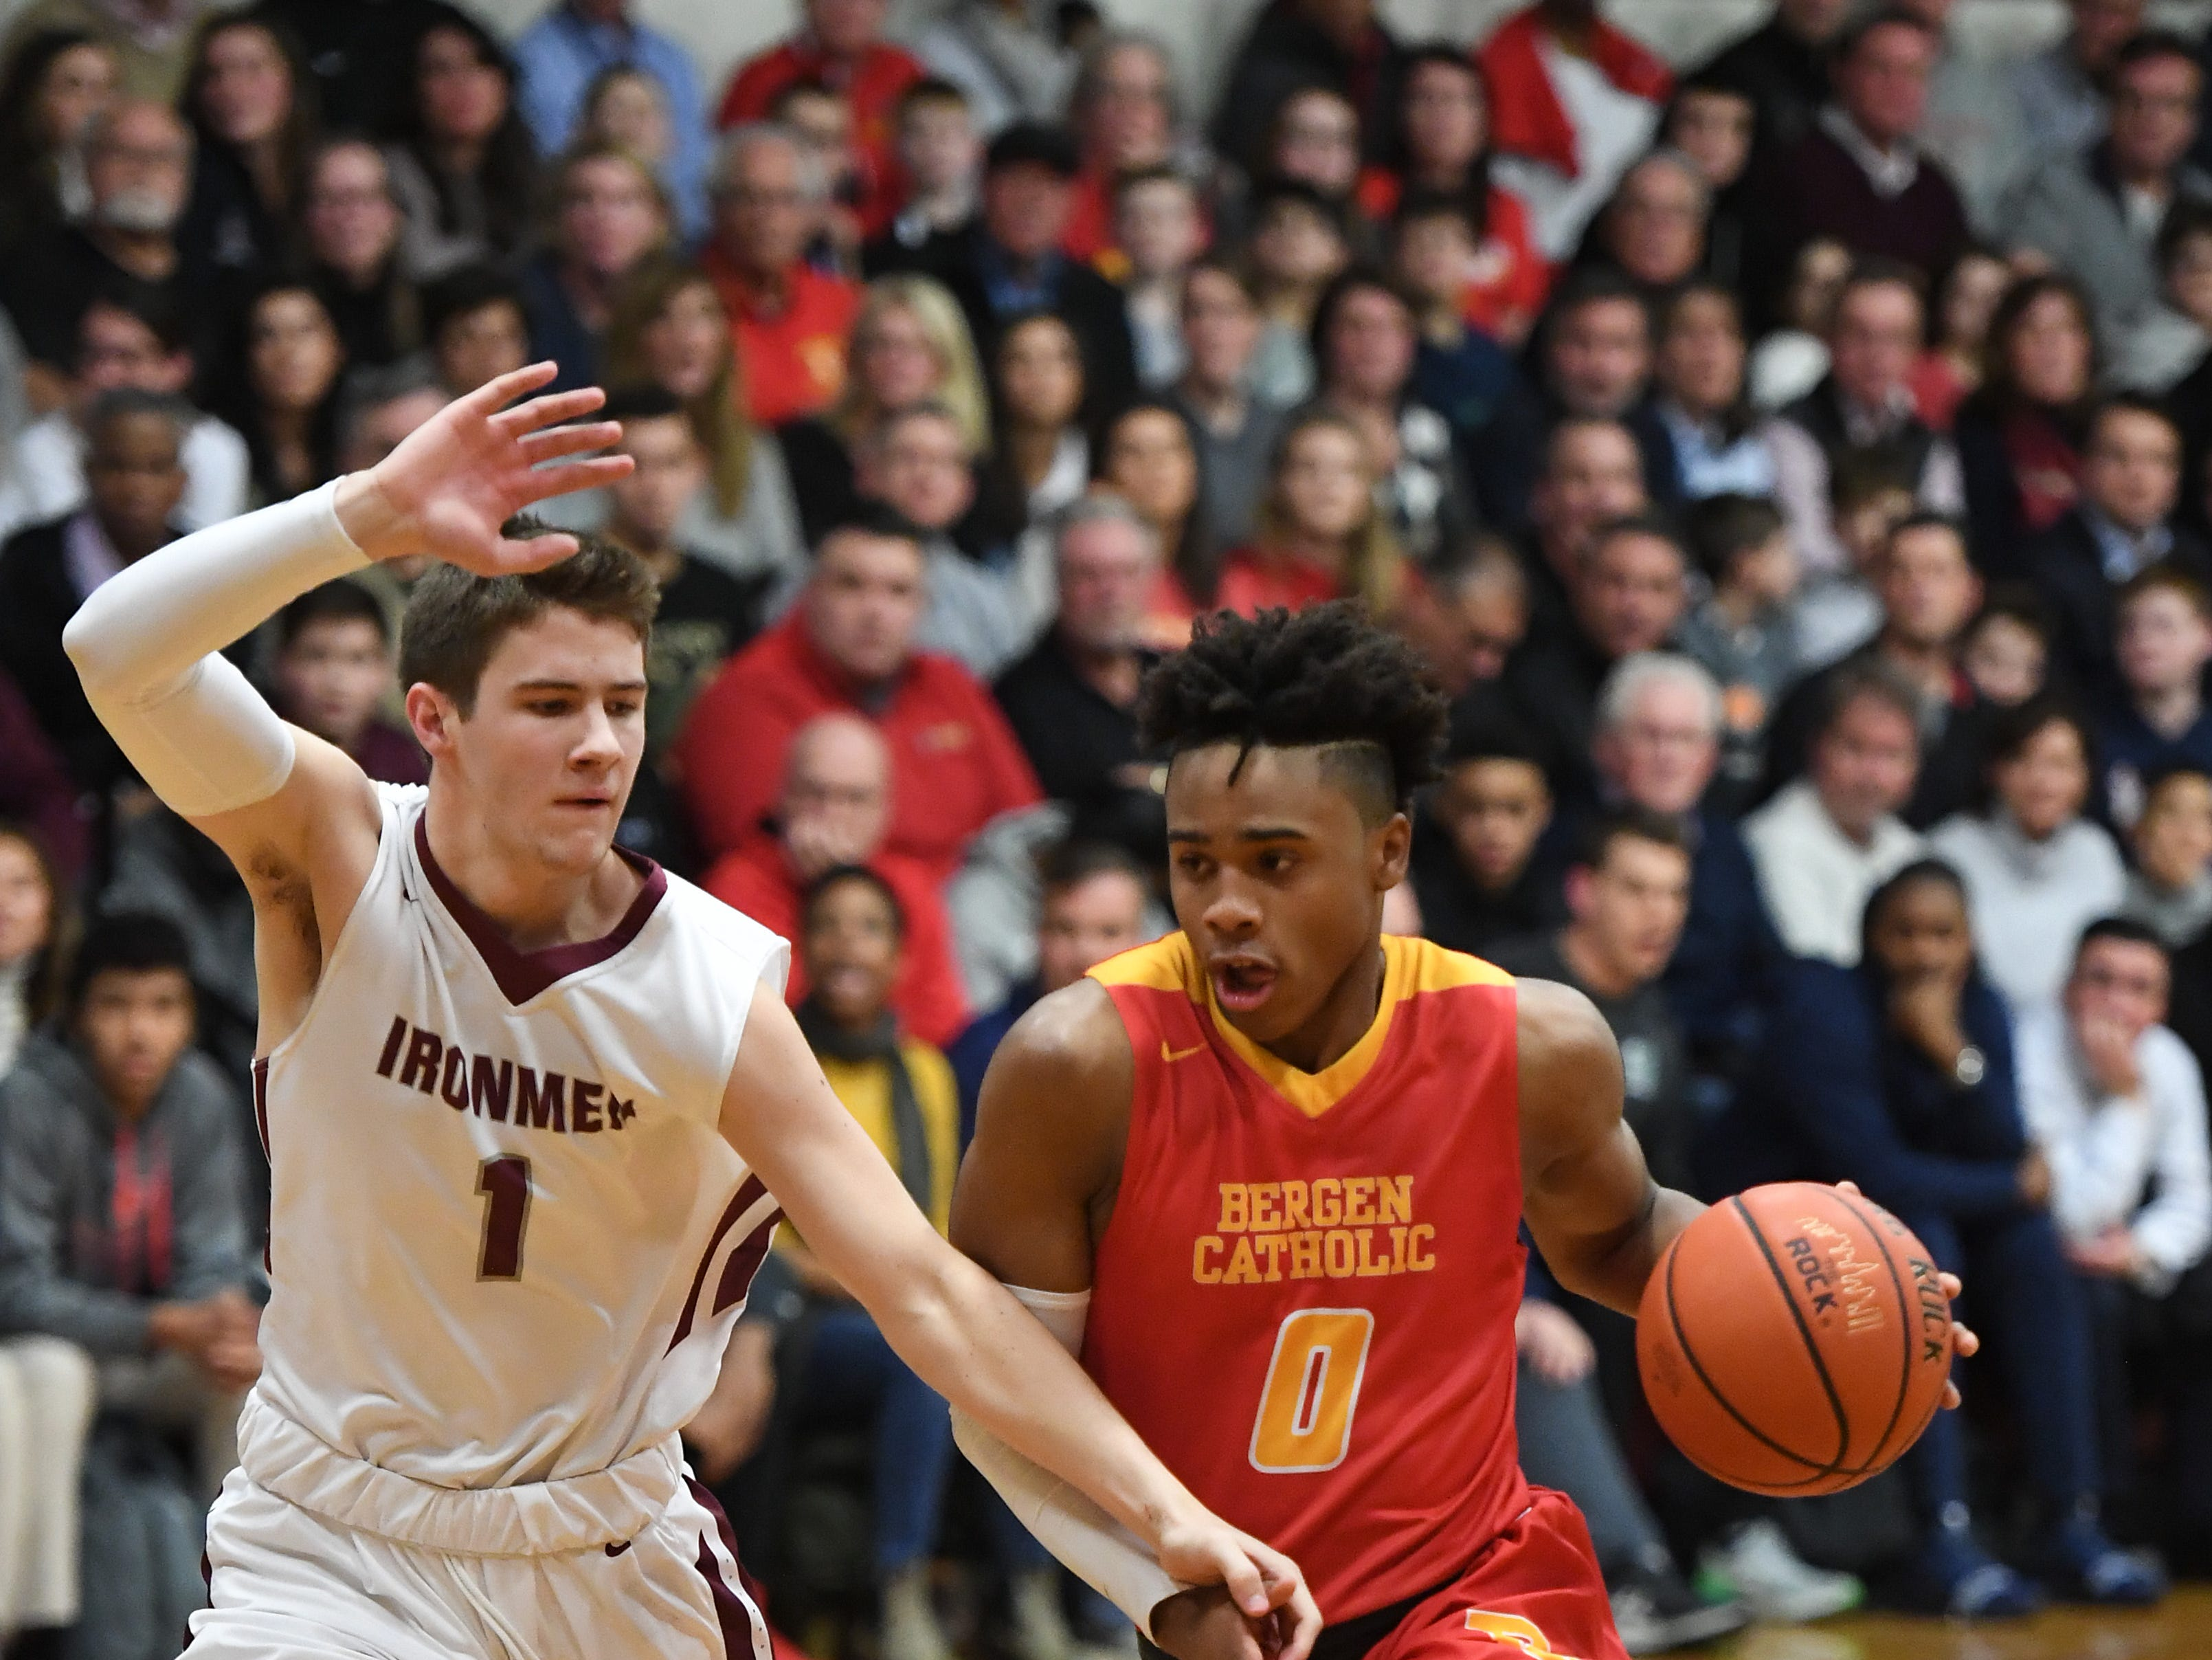 Bergen Catholic basketball at Don Bosco in Ramsey on Thursday, January 17, 2019. BC #0 Jayson Earl tries to get past DB #1 Kyle Maurer.